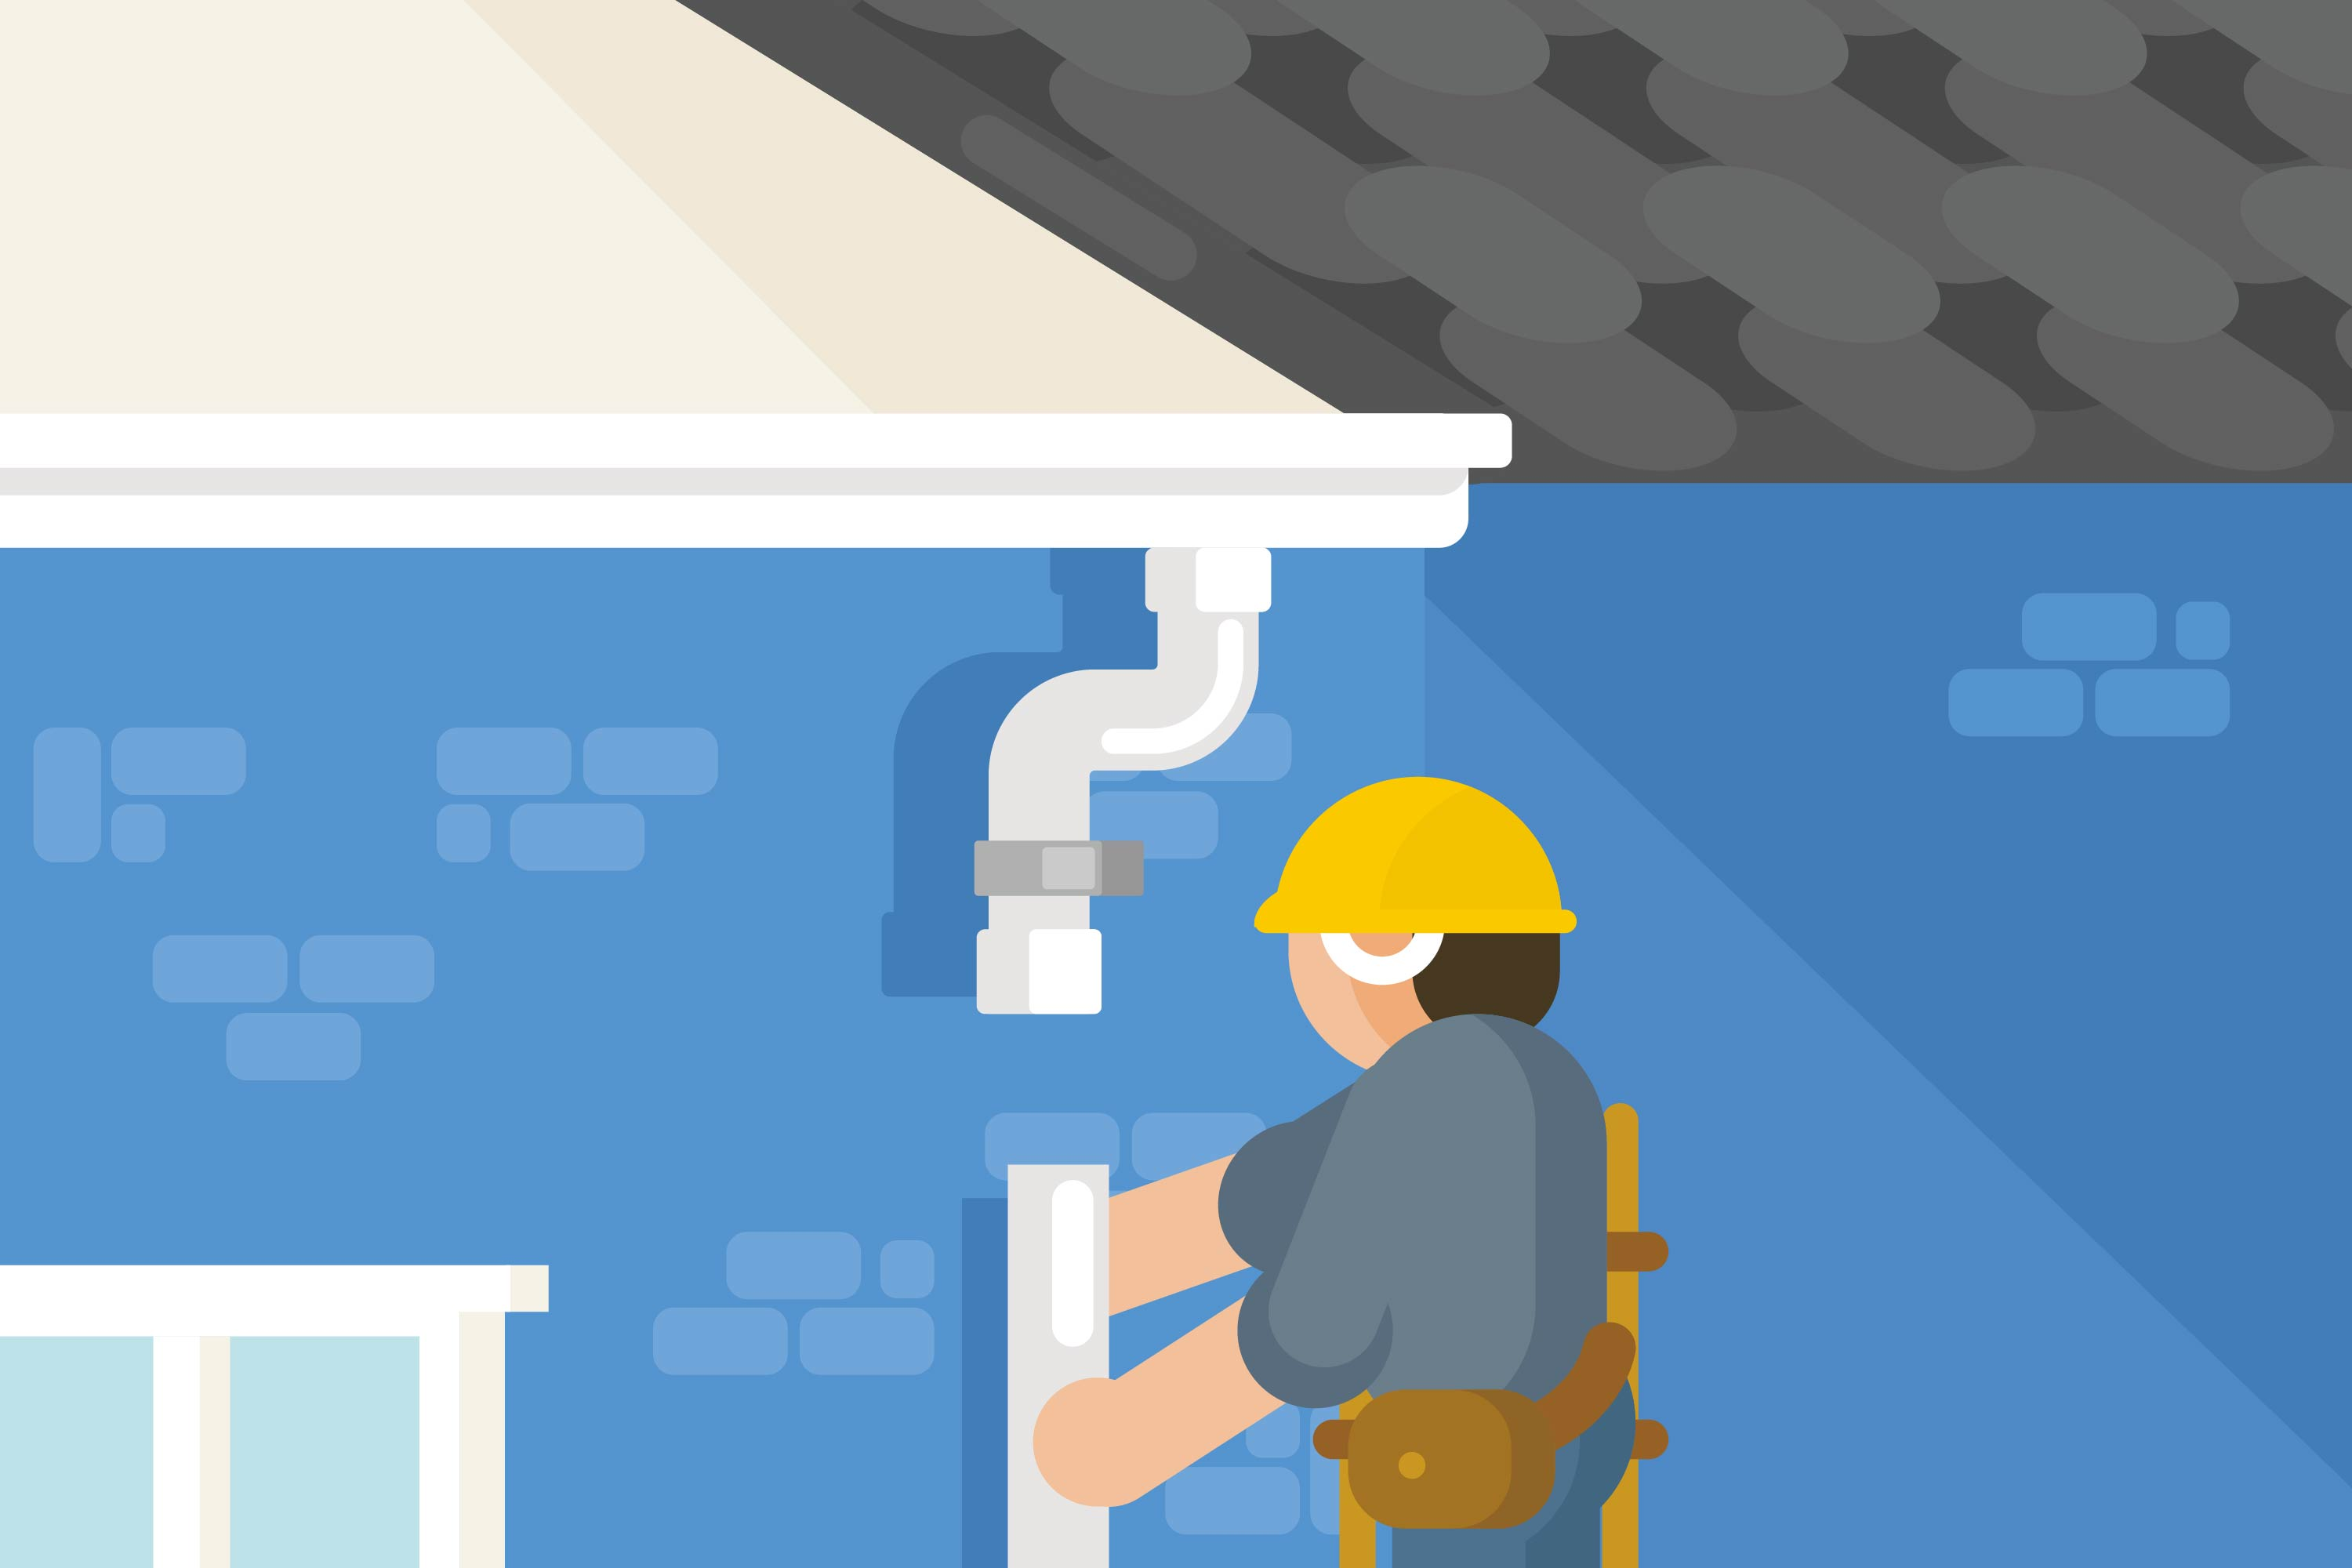 Gutter Illustration Download Free Vector Art Stock